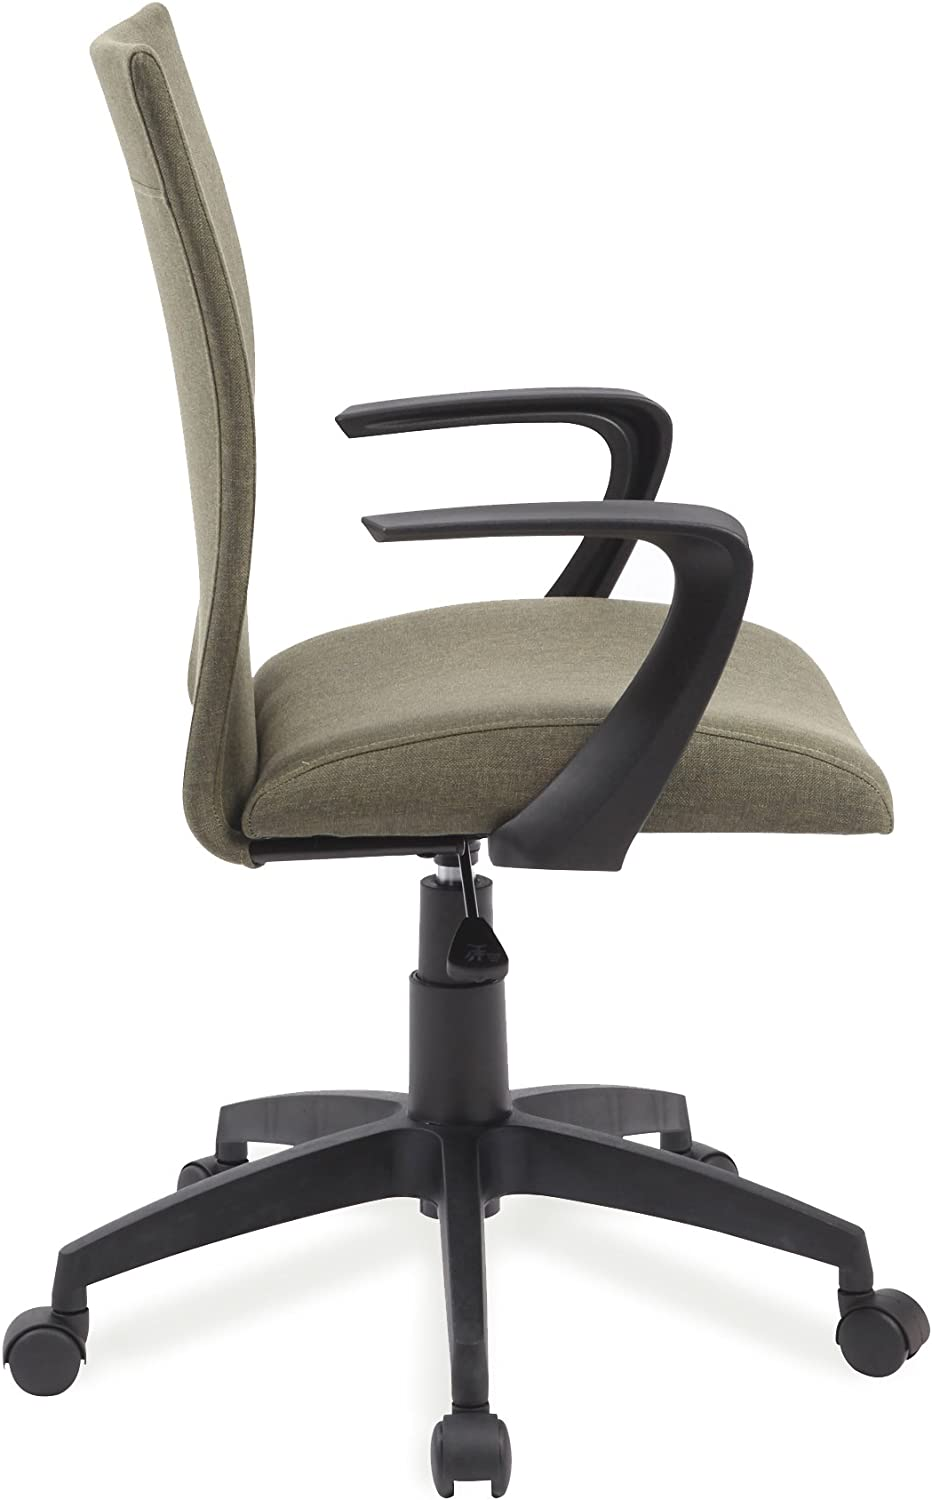 Leick Grey Linen Apostrophe Office Chair with Black Caster Base